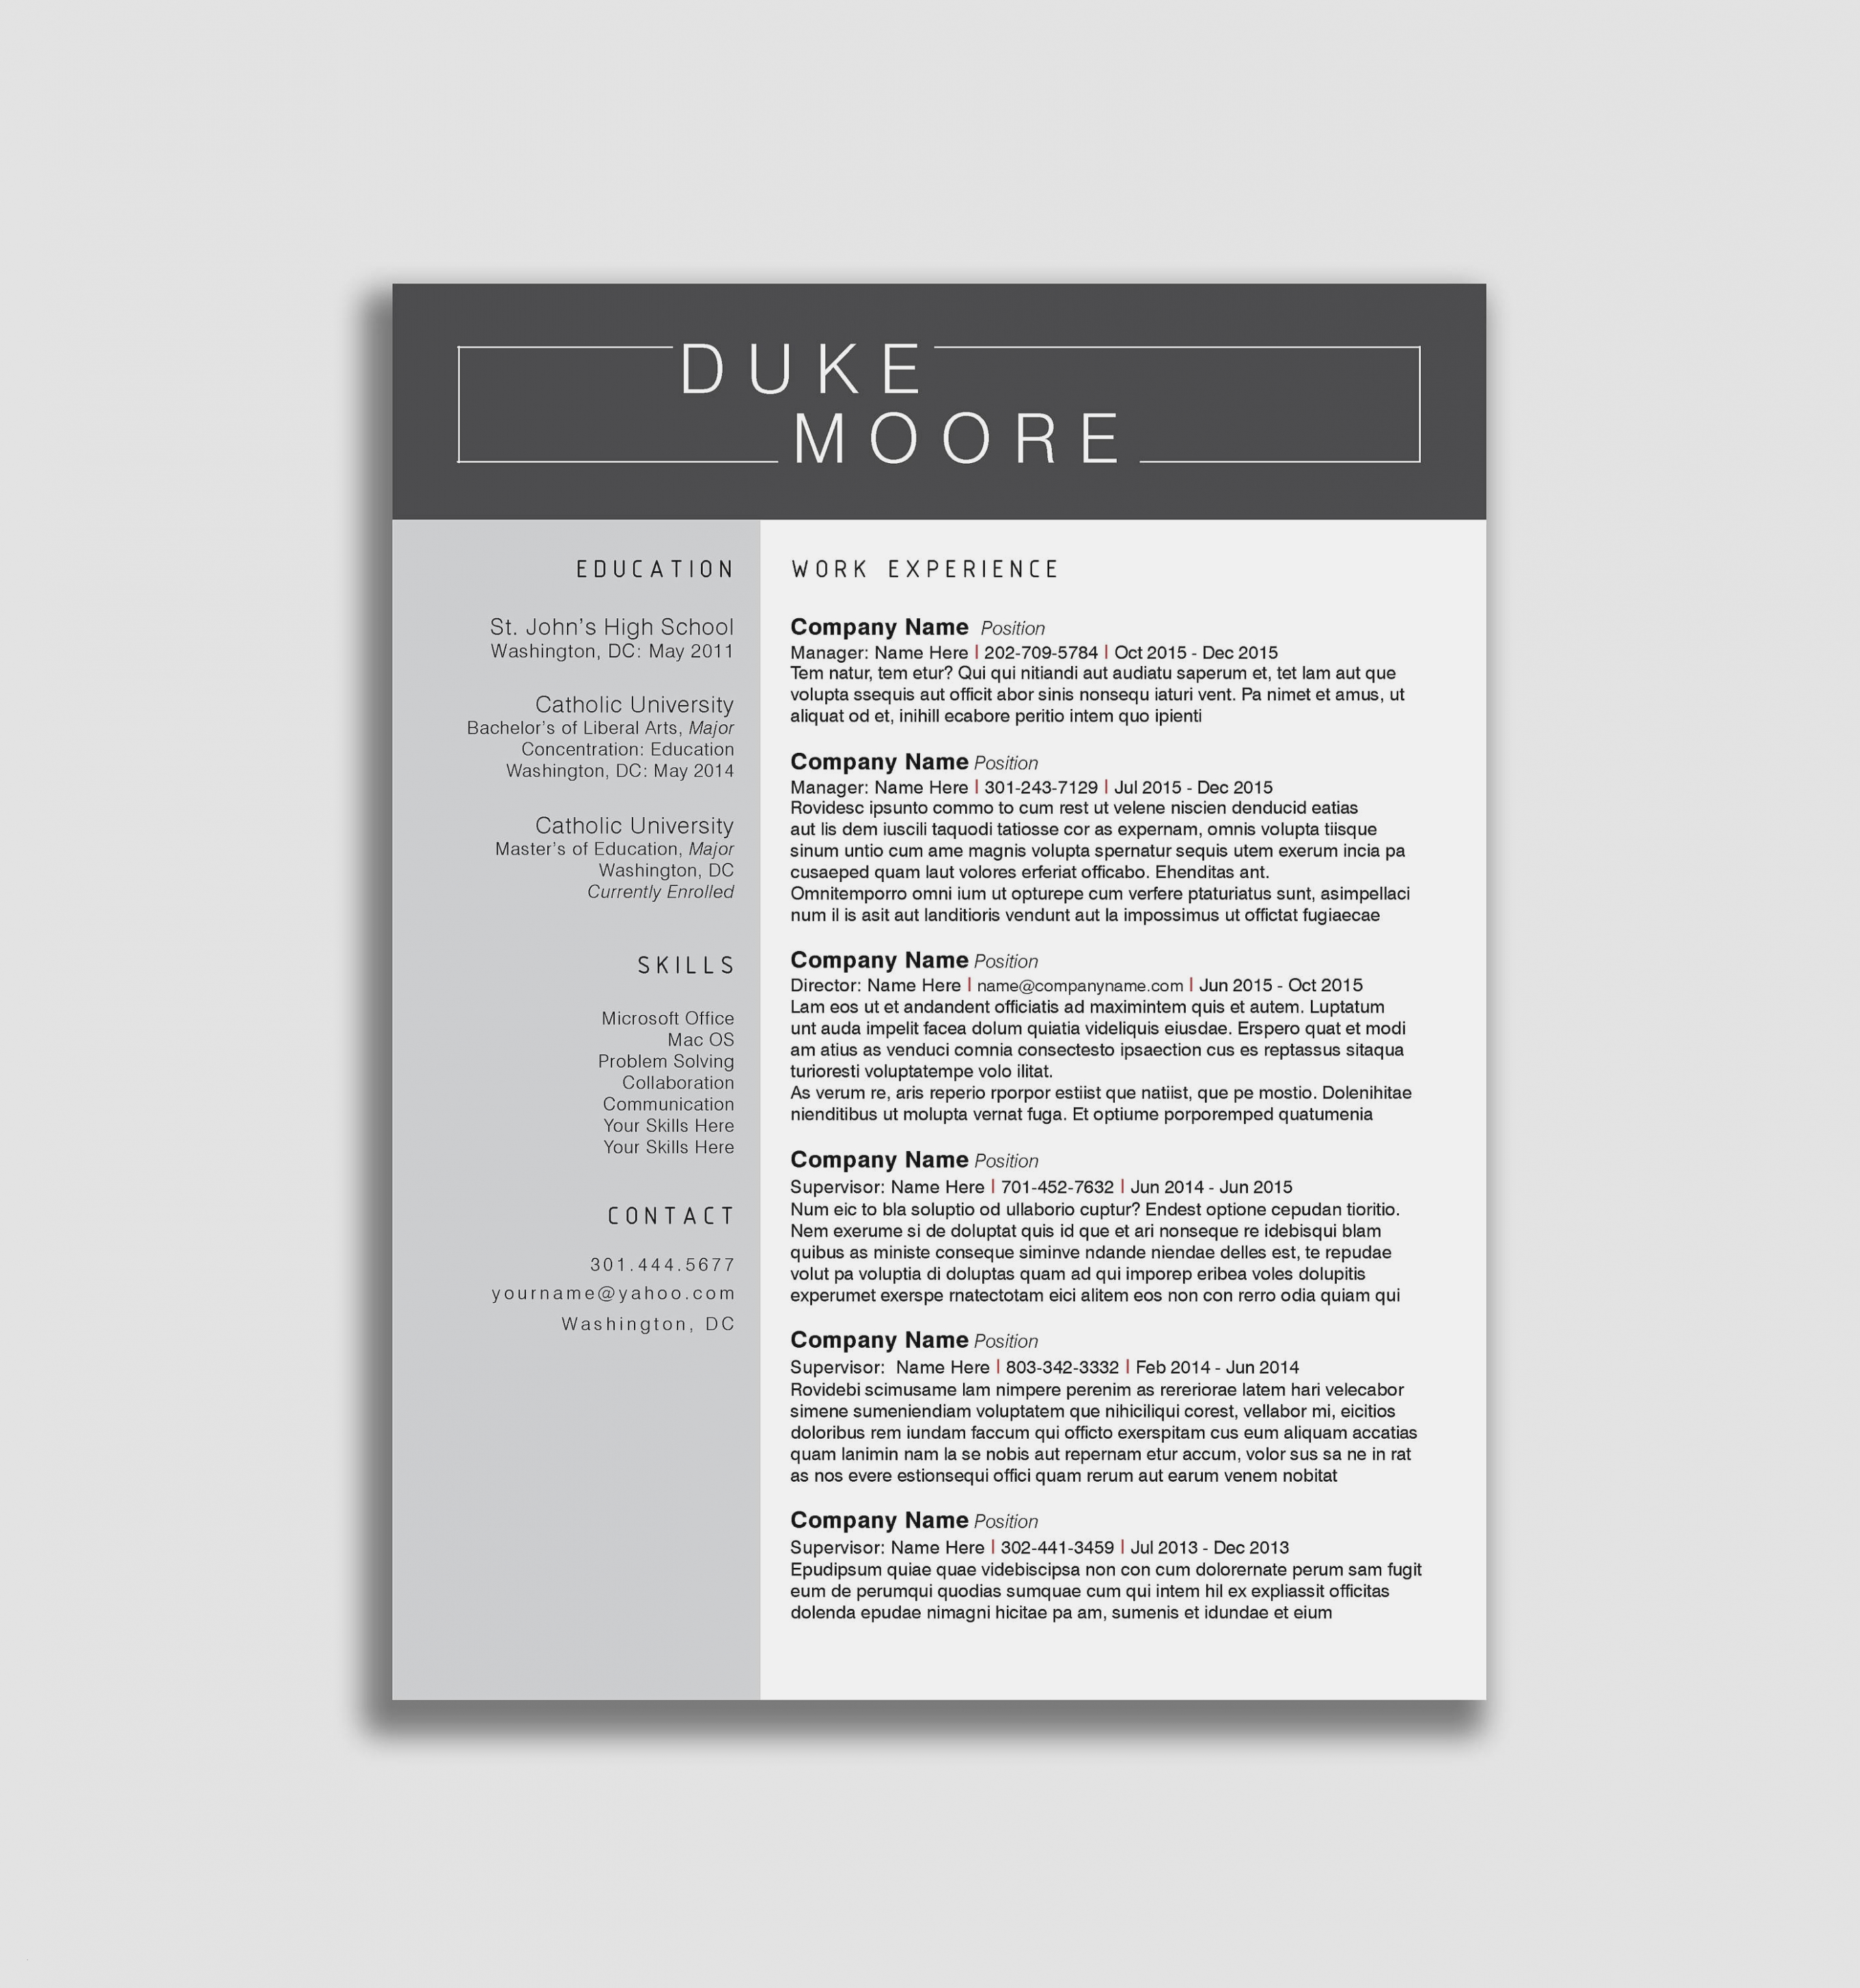 Resume Templates Pages - Ten Gigantic Influences